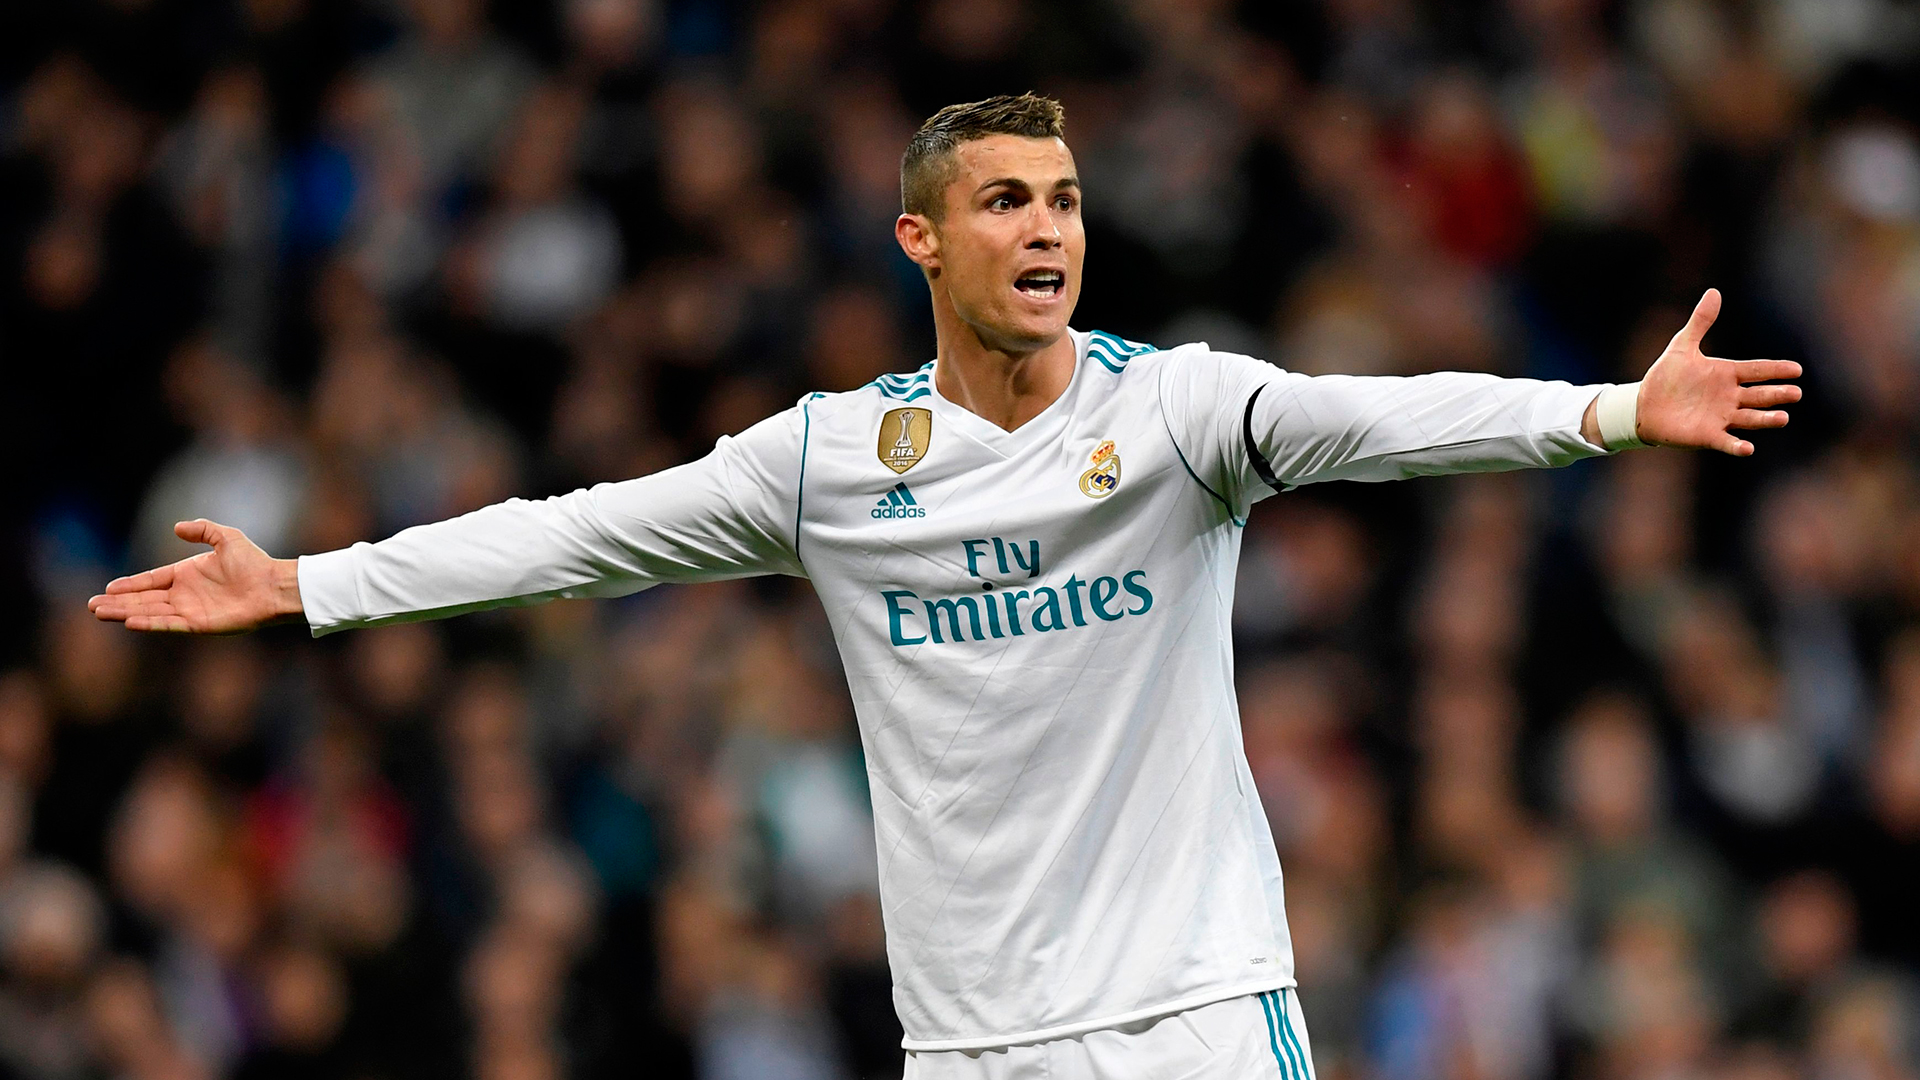 What s wrong with Ronaldo Cristiano goal drought a concern as